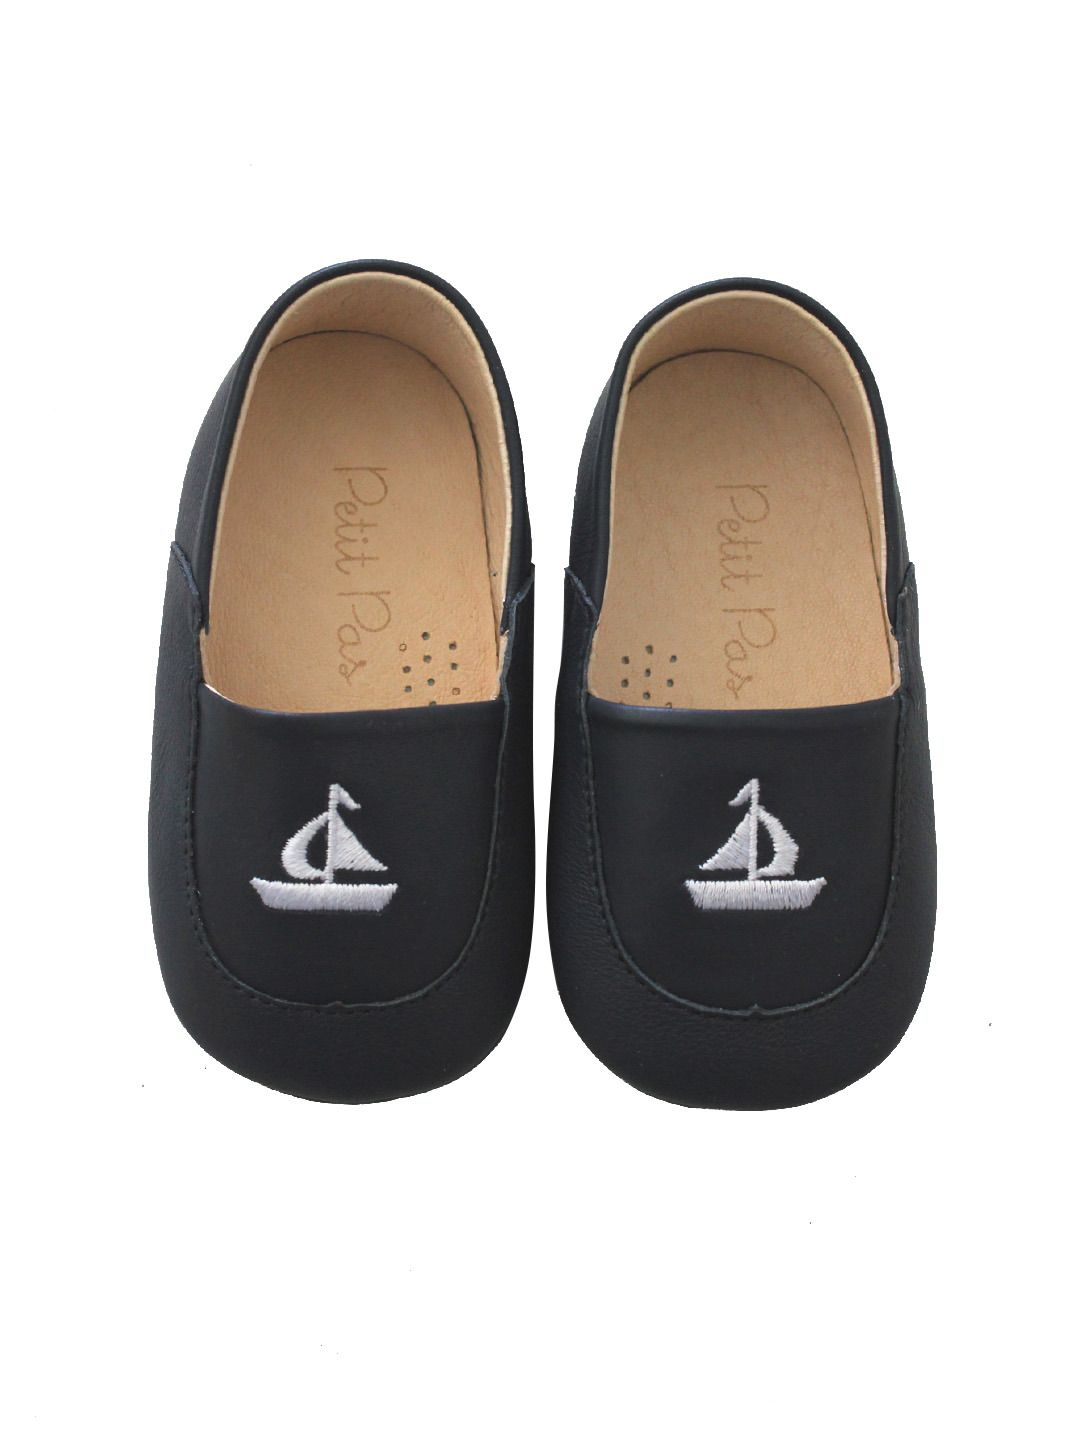 450f567fad45f Navy Sailboat Embroidered Loafers by Petit Pas at Gilt | Baby ...